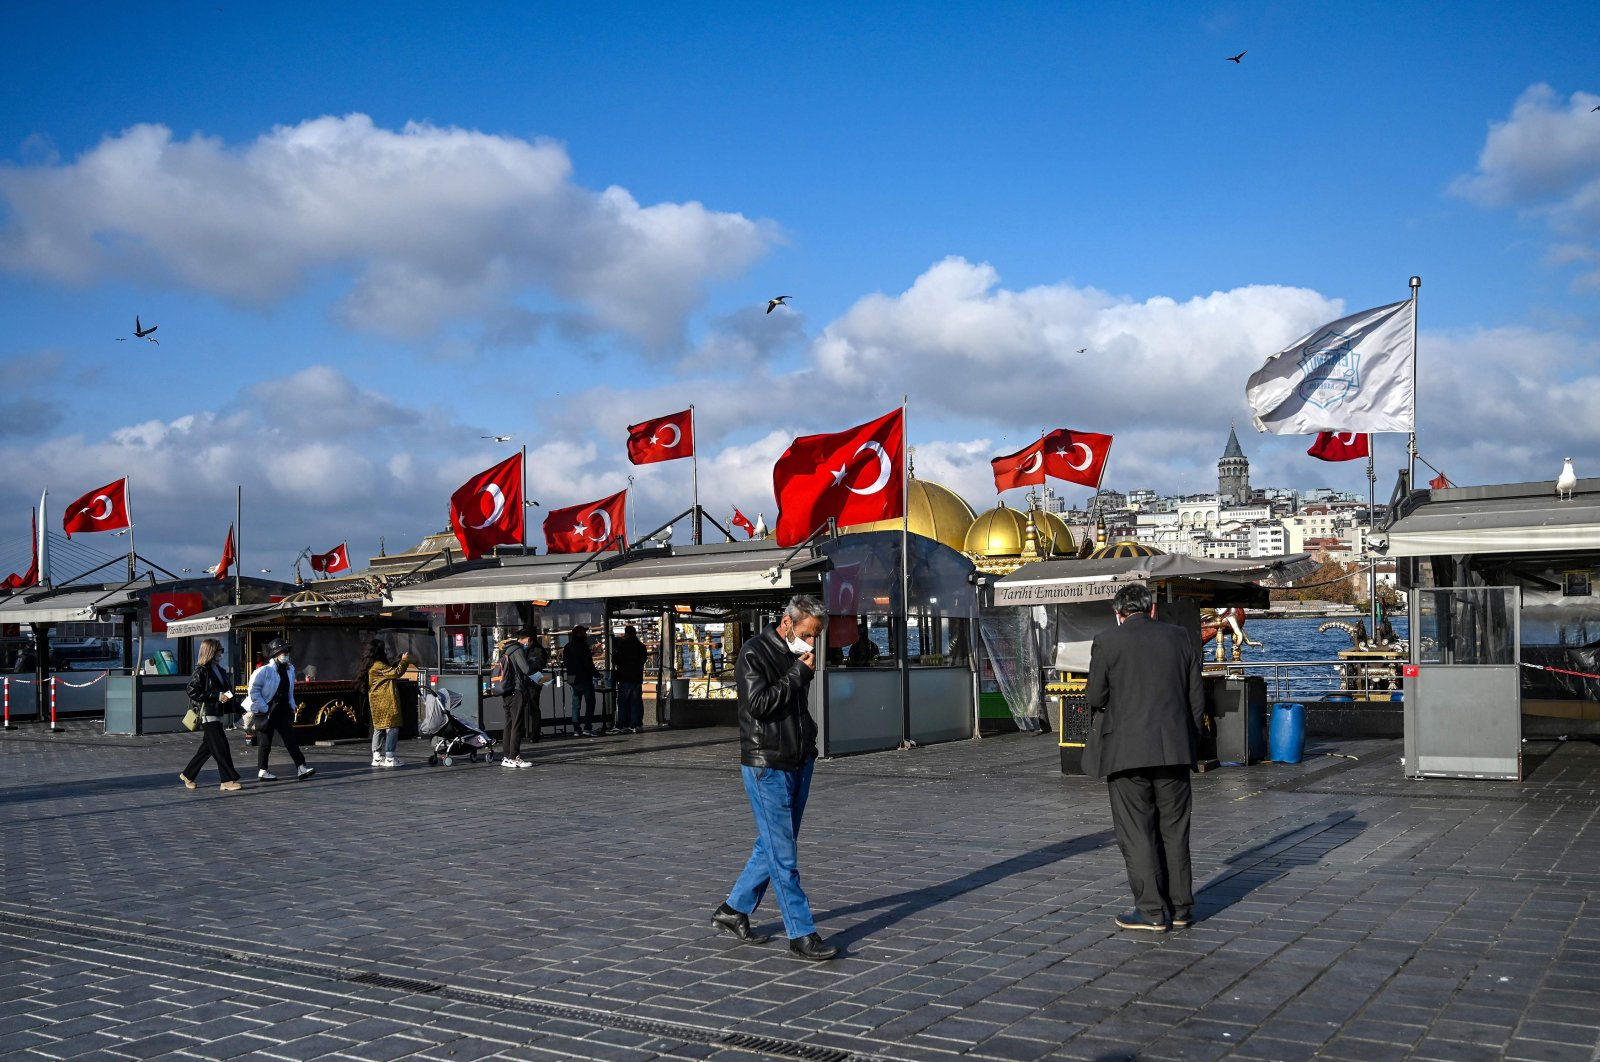 People walk in a deserted Eminönü Square in Istanbul near closed food stalls during a weekend curfew aimed at curbing the spread of the COVID-19 pandemic, Turkey, Dec. 6, 2020. (AFP Photo)